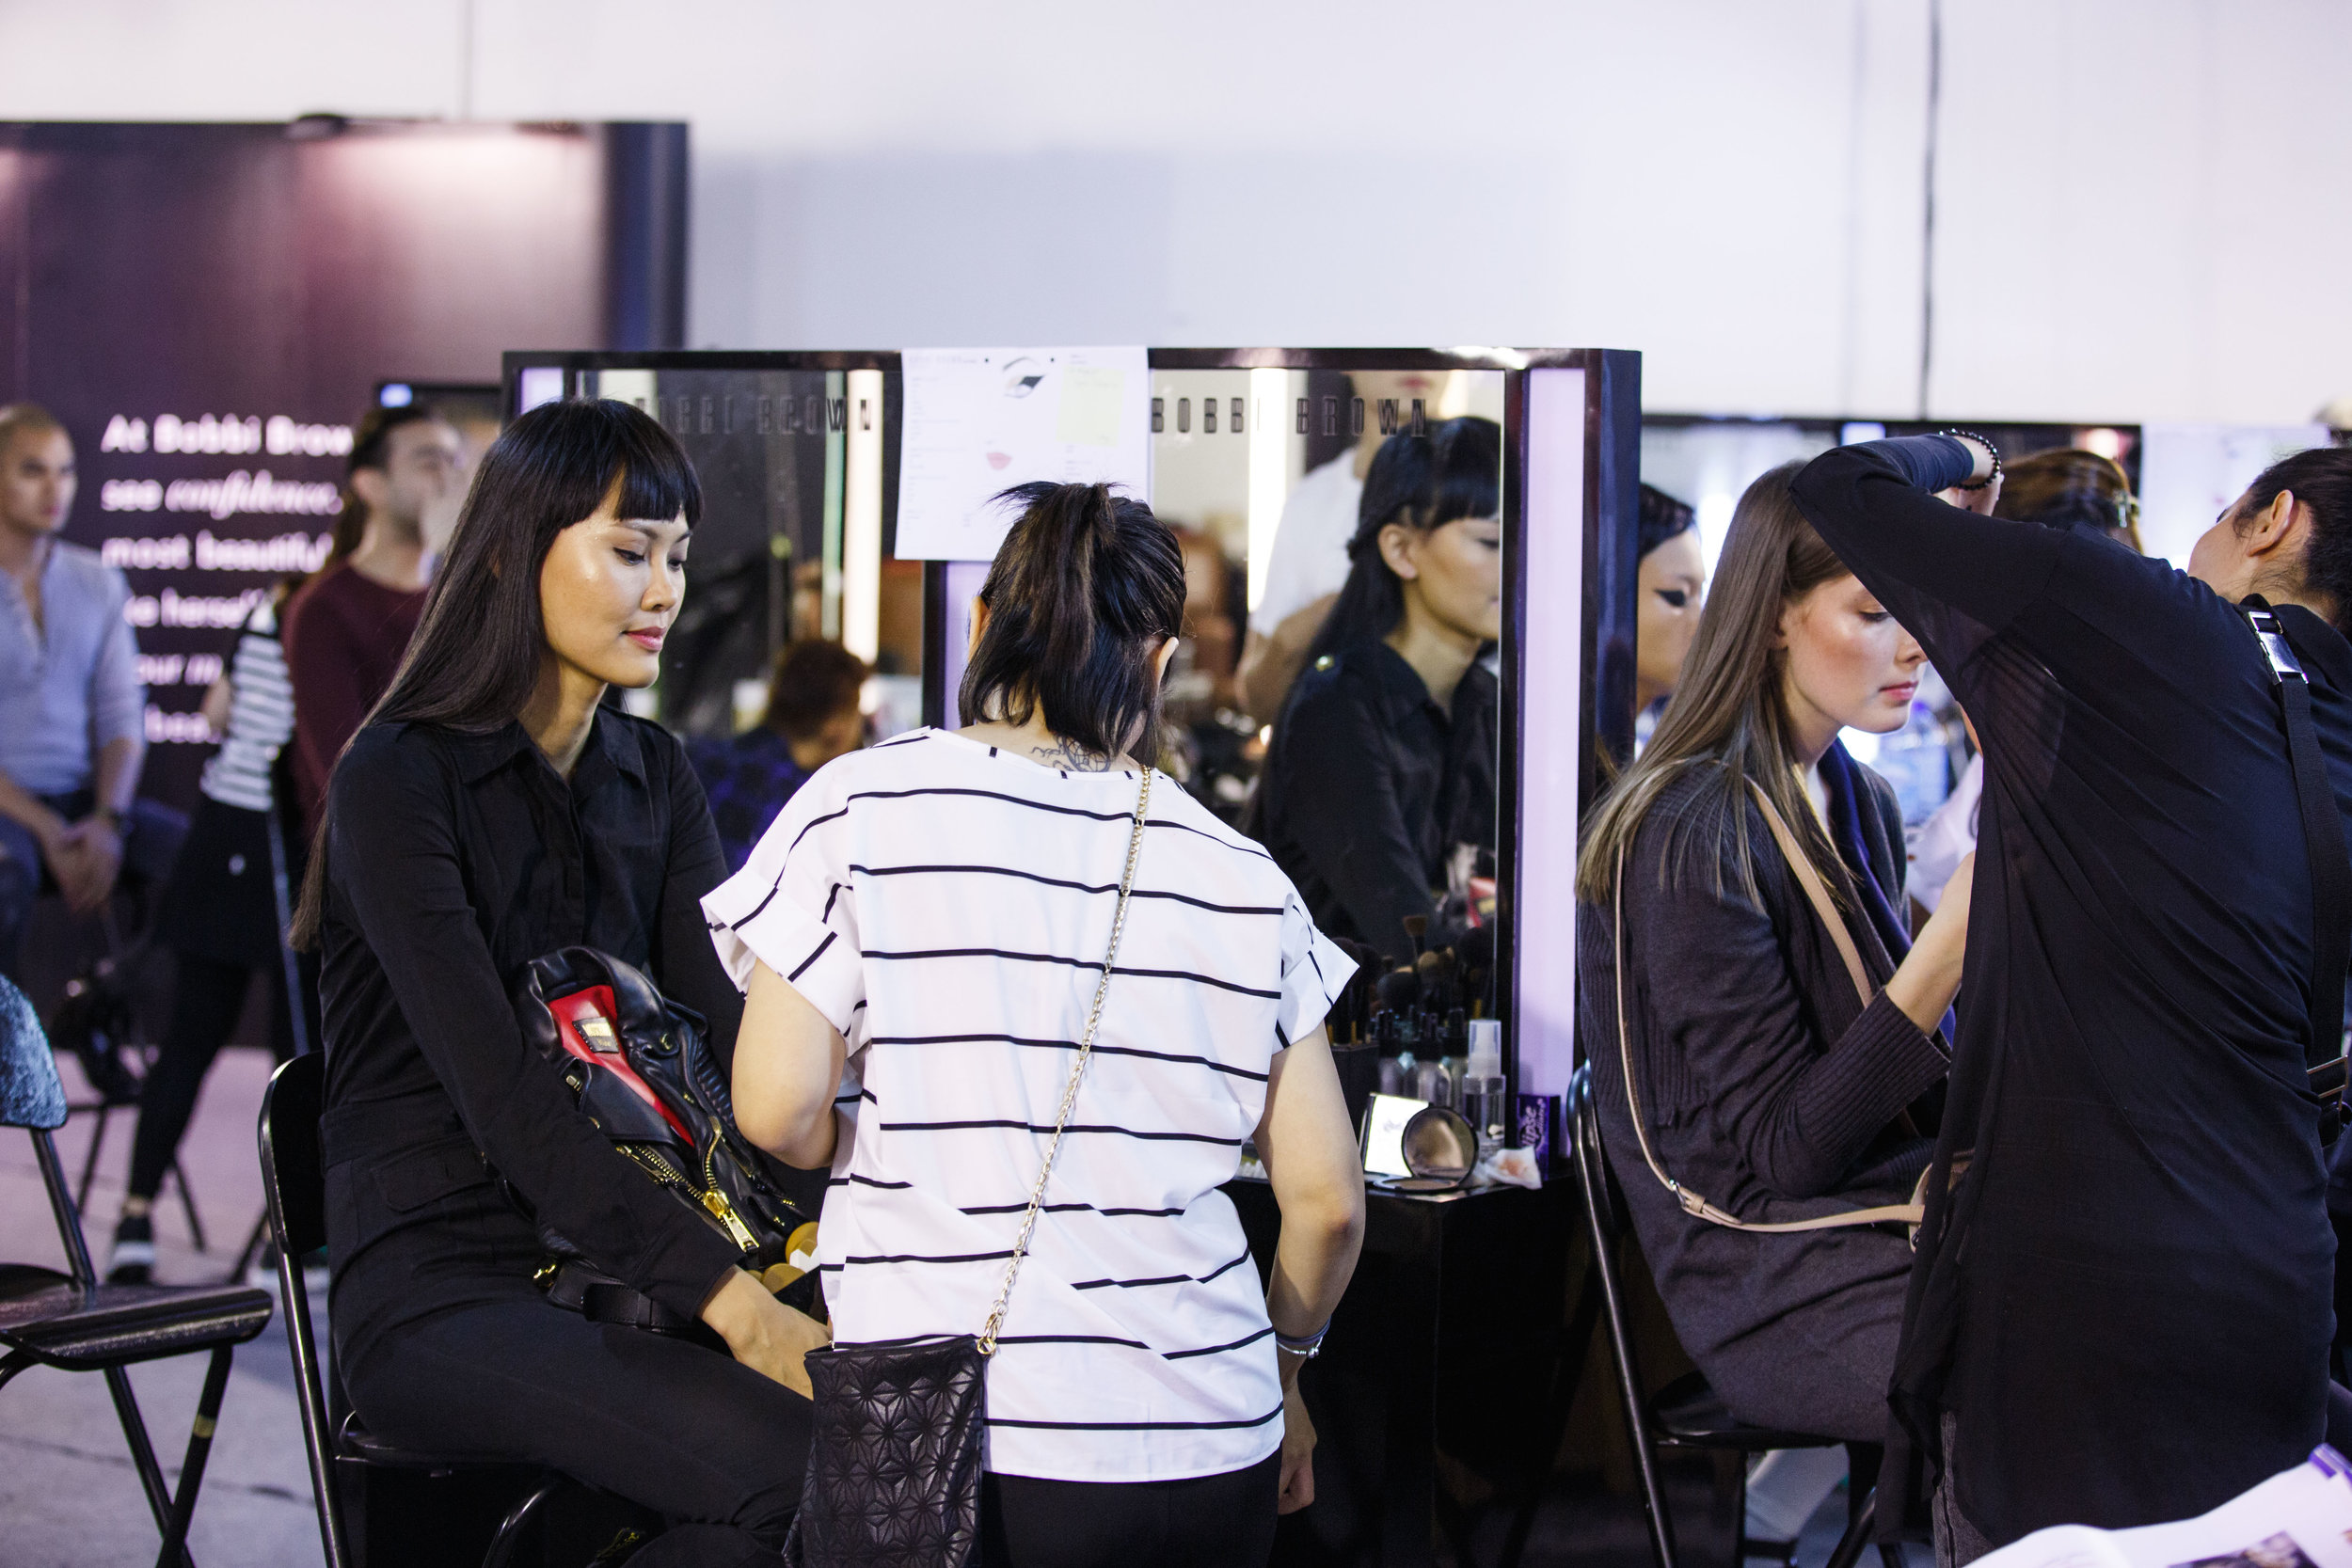 KLFW 2016 - Day 5 - - AIA_8877 - Photo by All Is Amazing.jpg